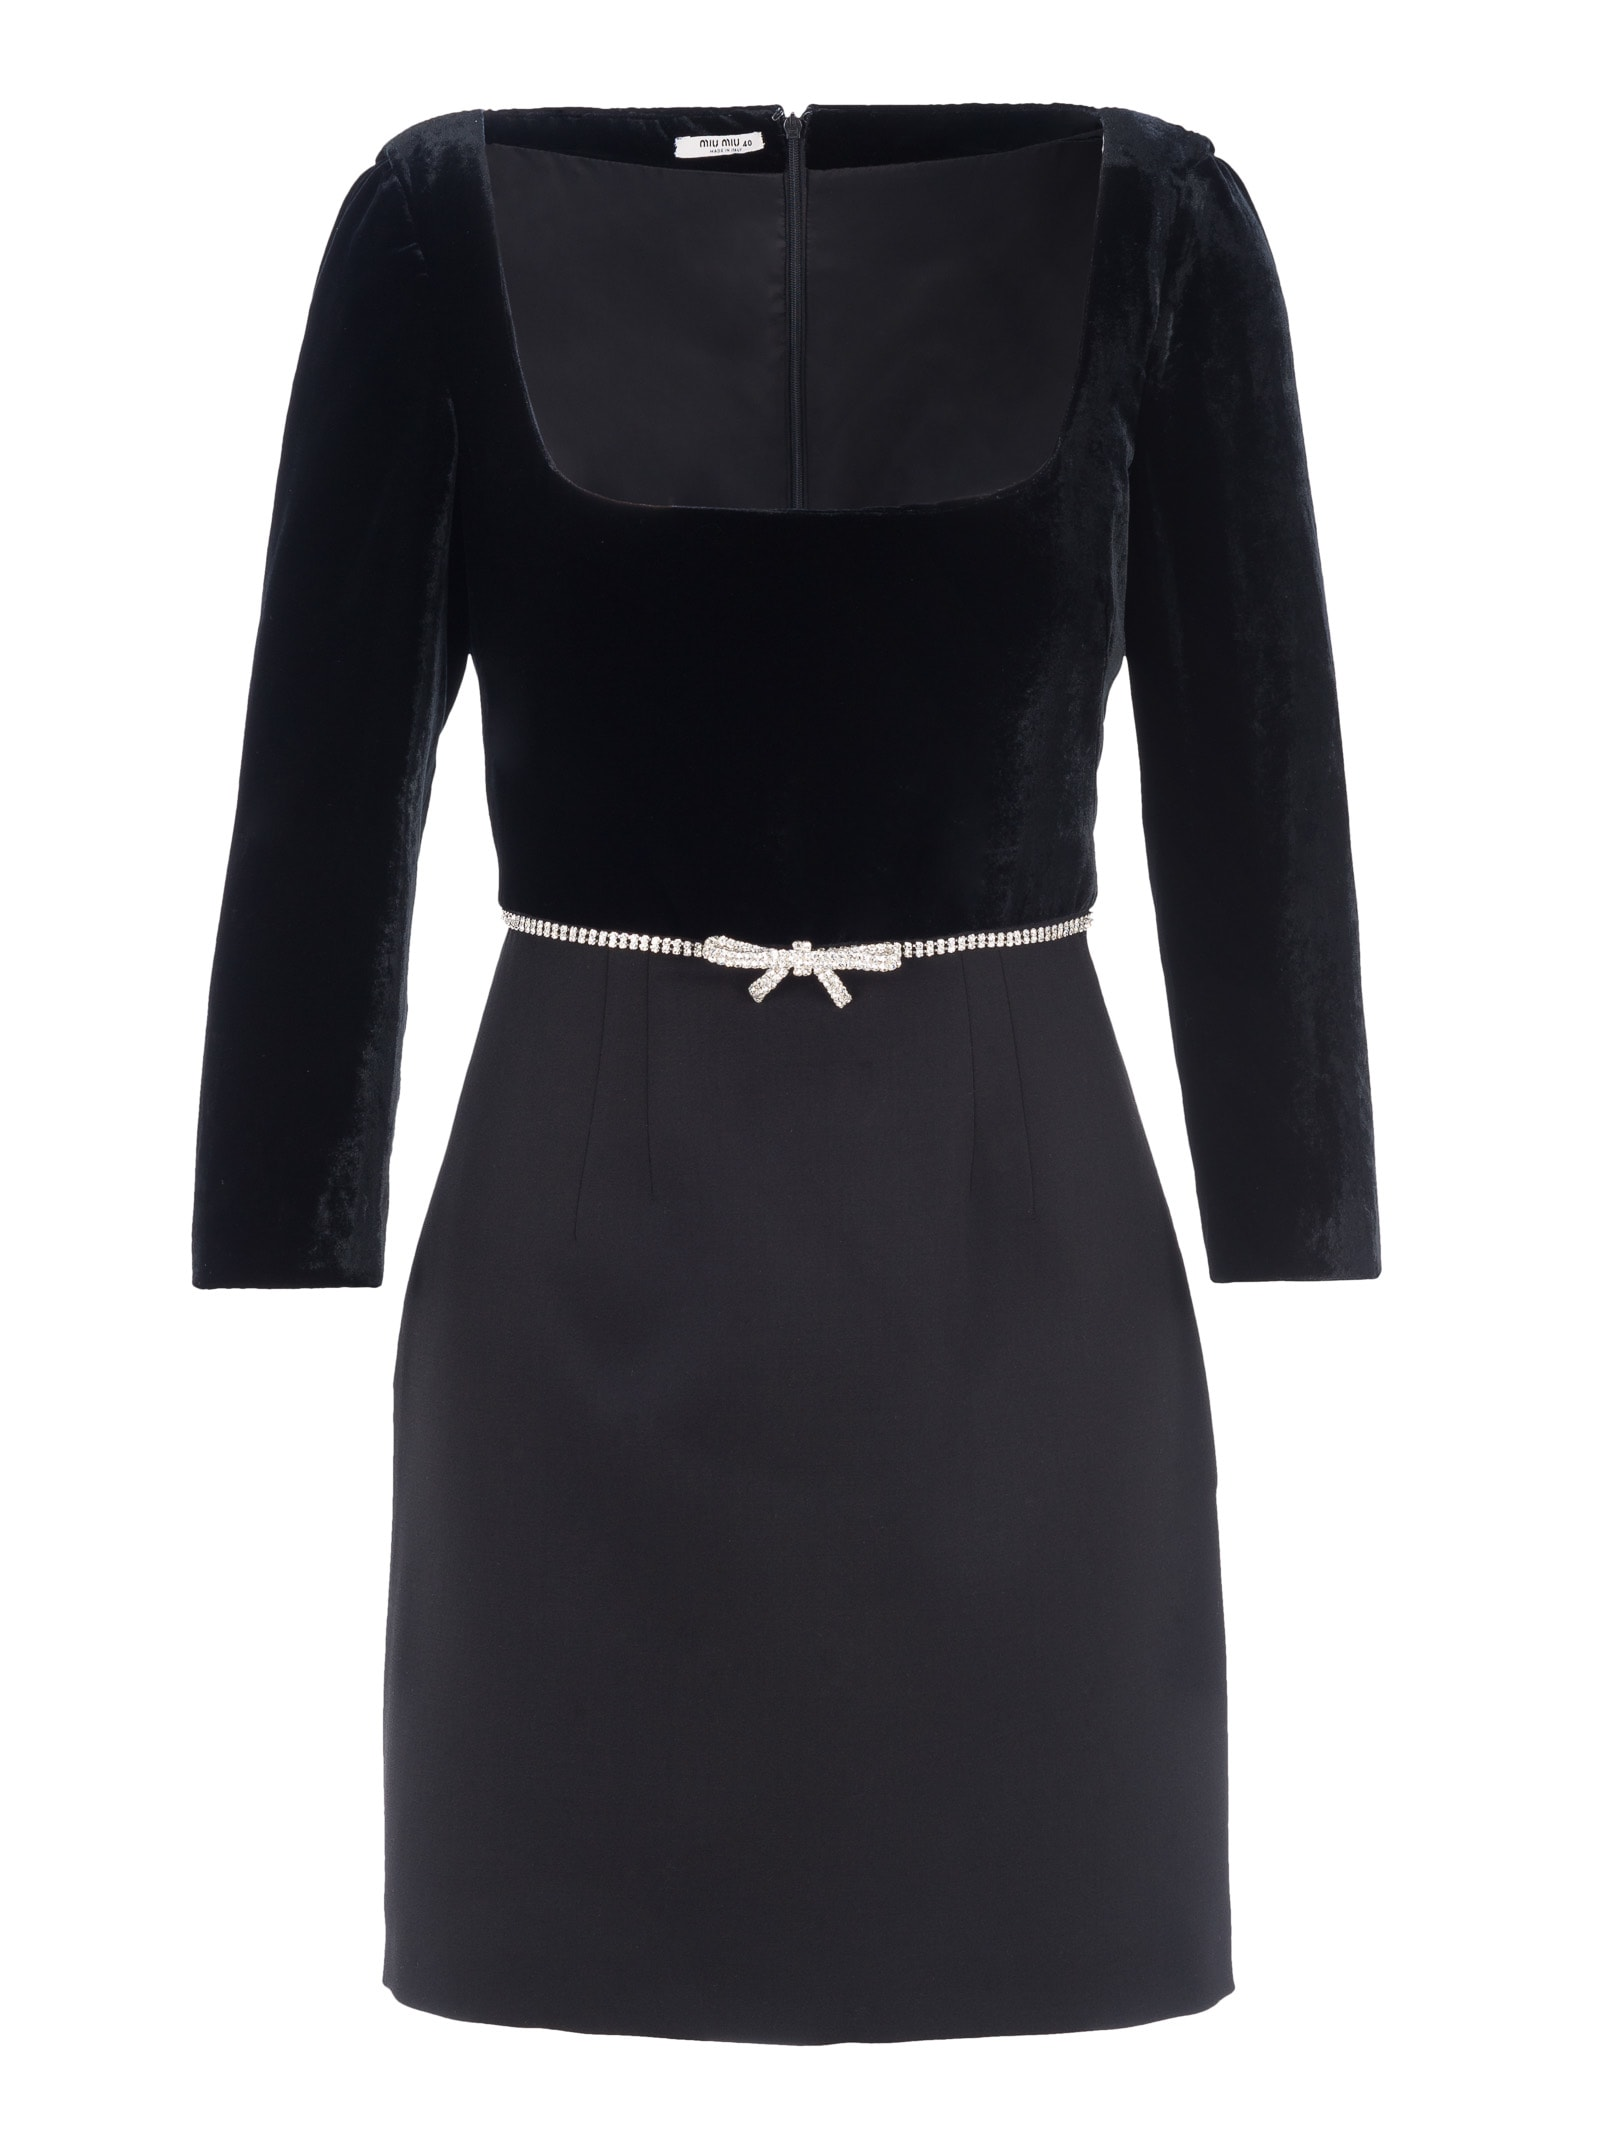 Miu Miu Embellished Bow Mini Dress